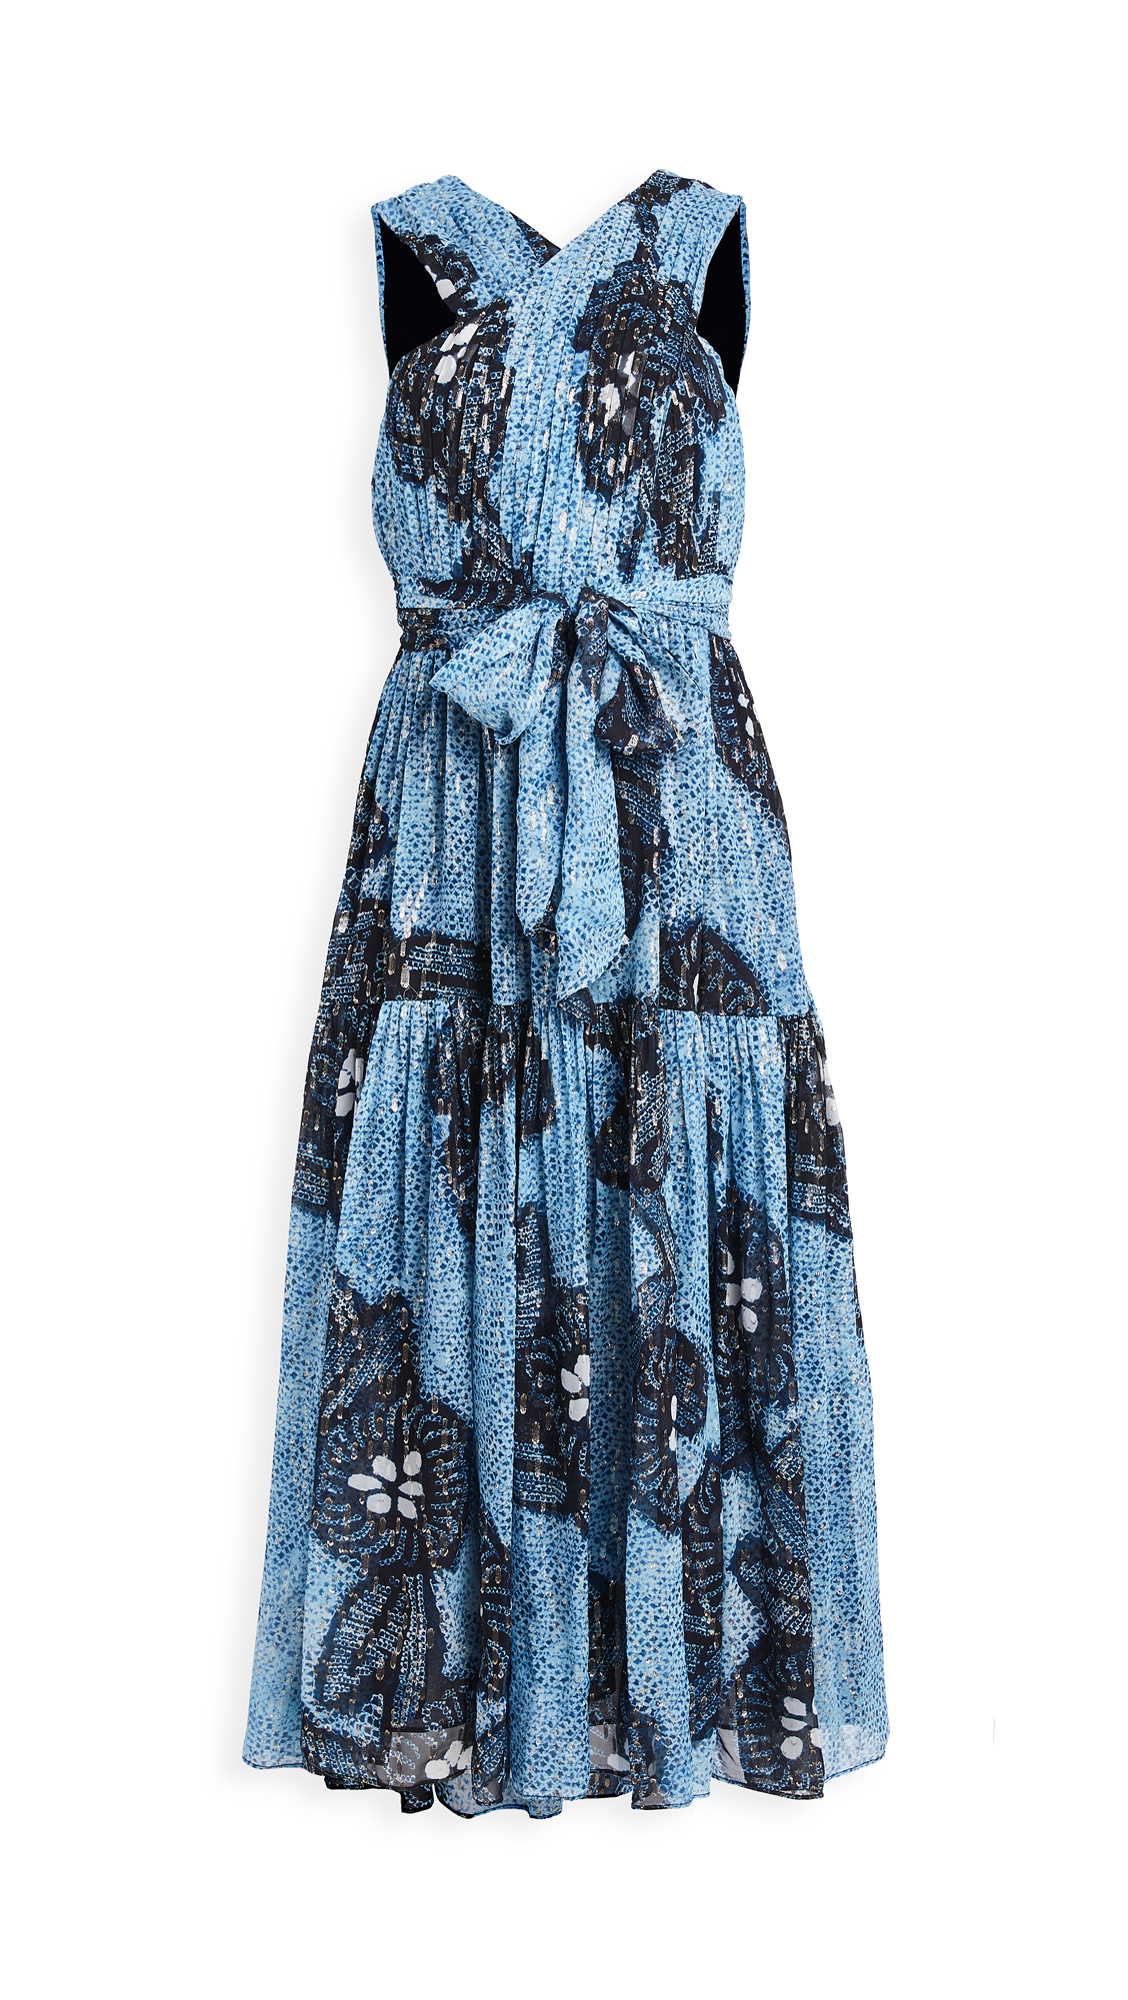 Ulla Johnson Adora Dress - 30% Off Sale